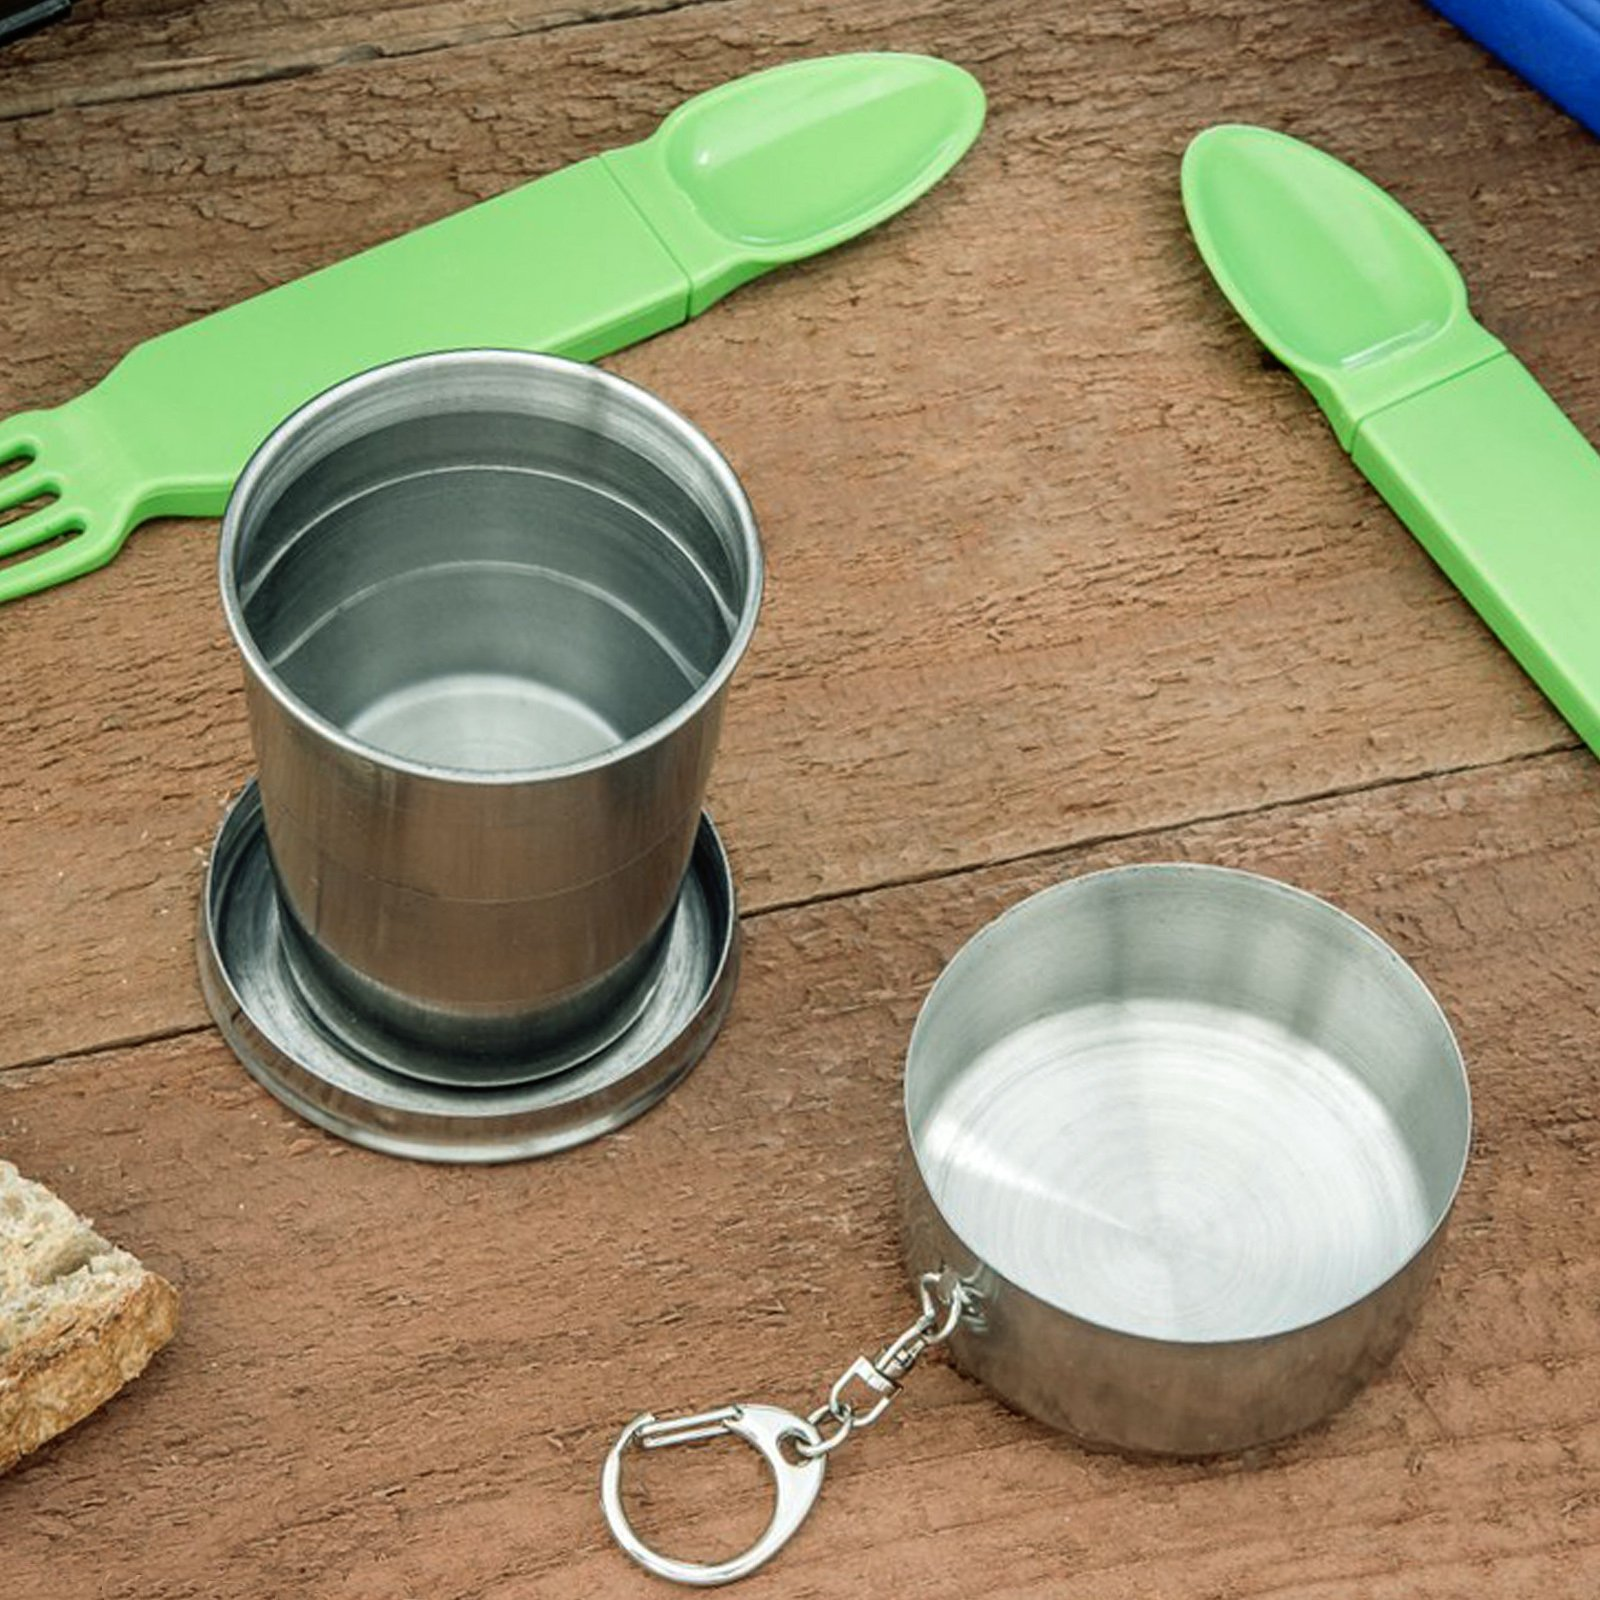 ASR Outdoor Stainless Steel Collapsible Camping Cup 4.7oz